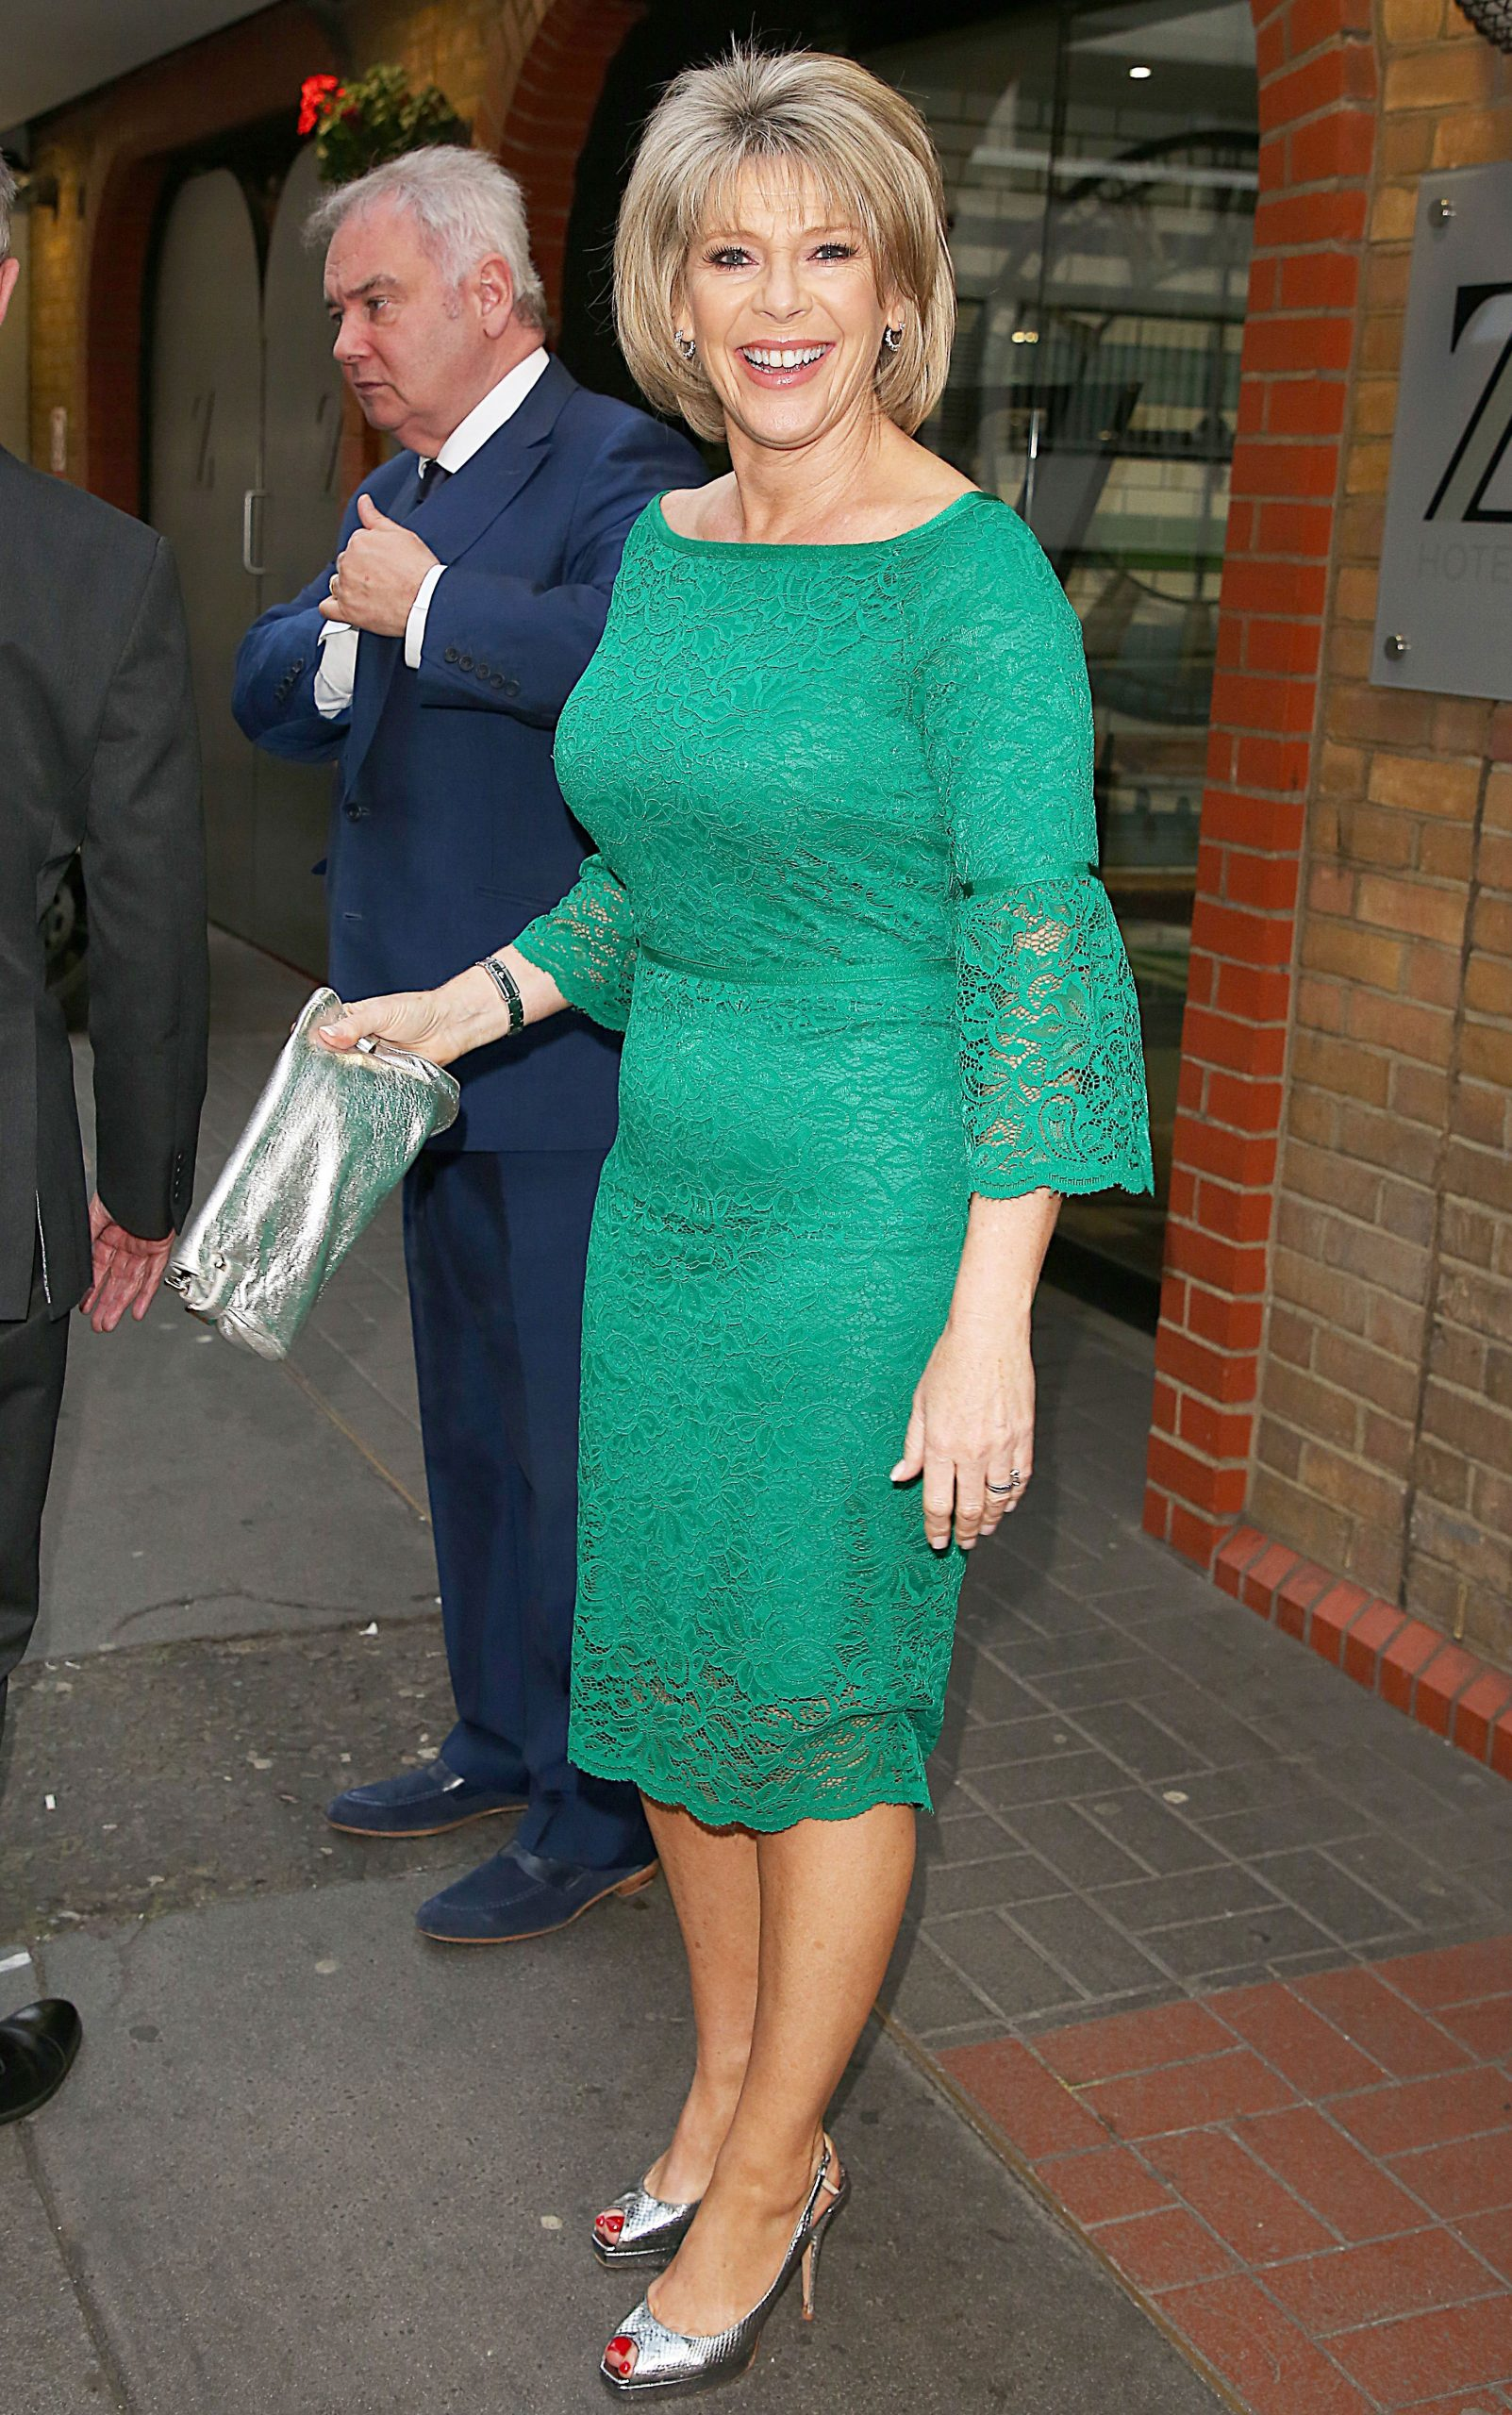 Ruth Langsford Dress Presenter Wears Flattering Lace Design From Qvc Woman Home